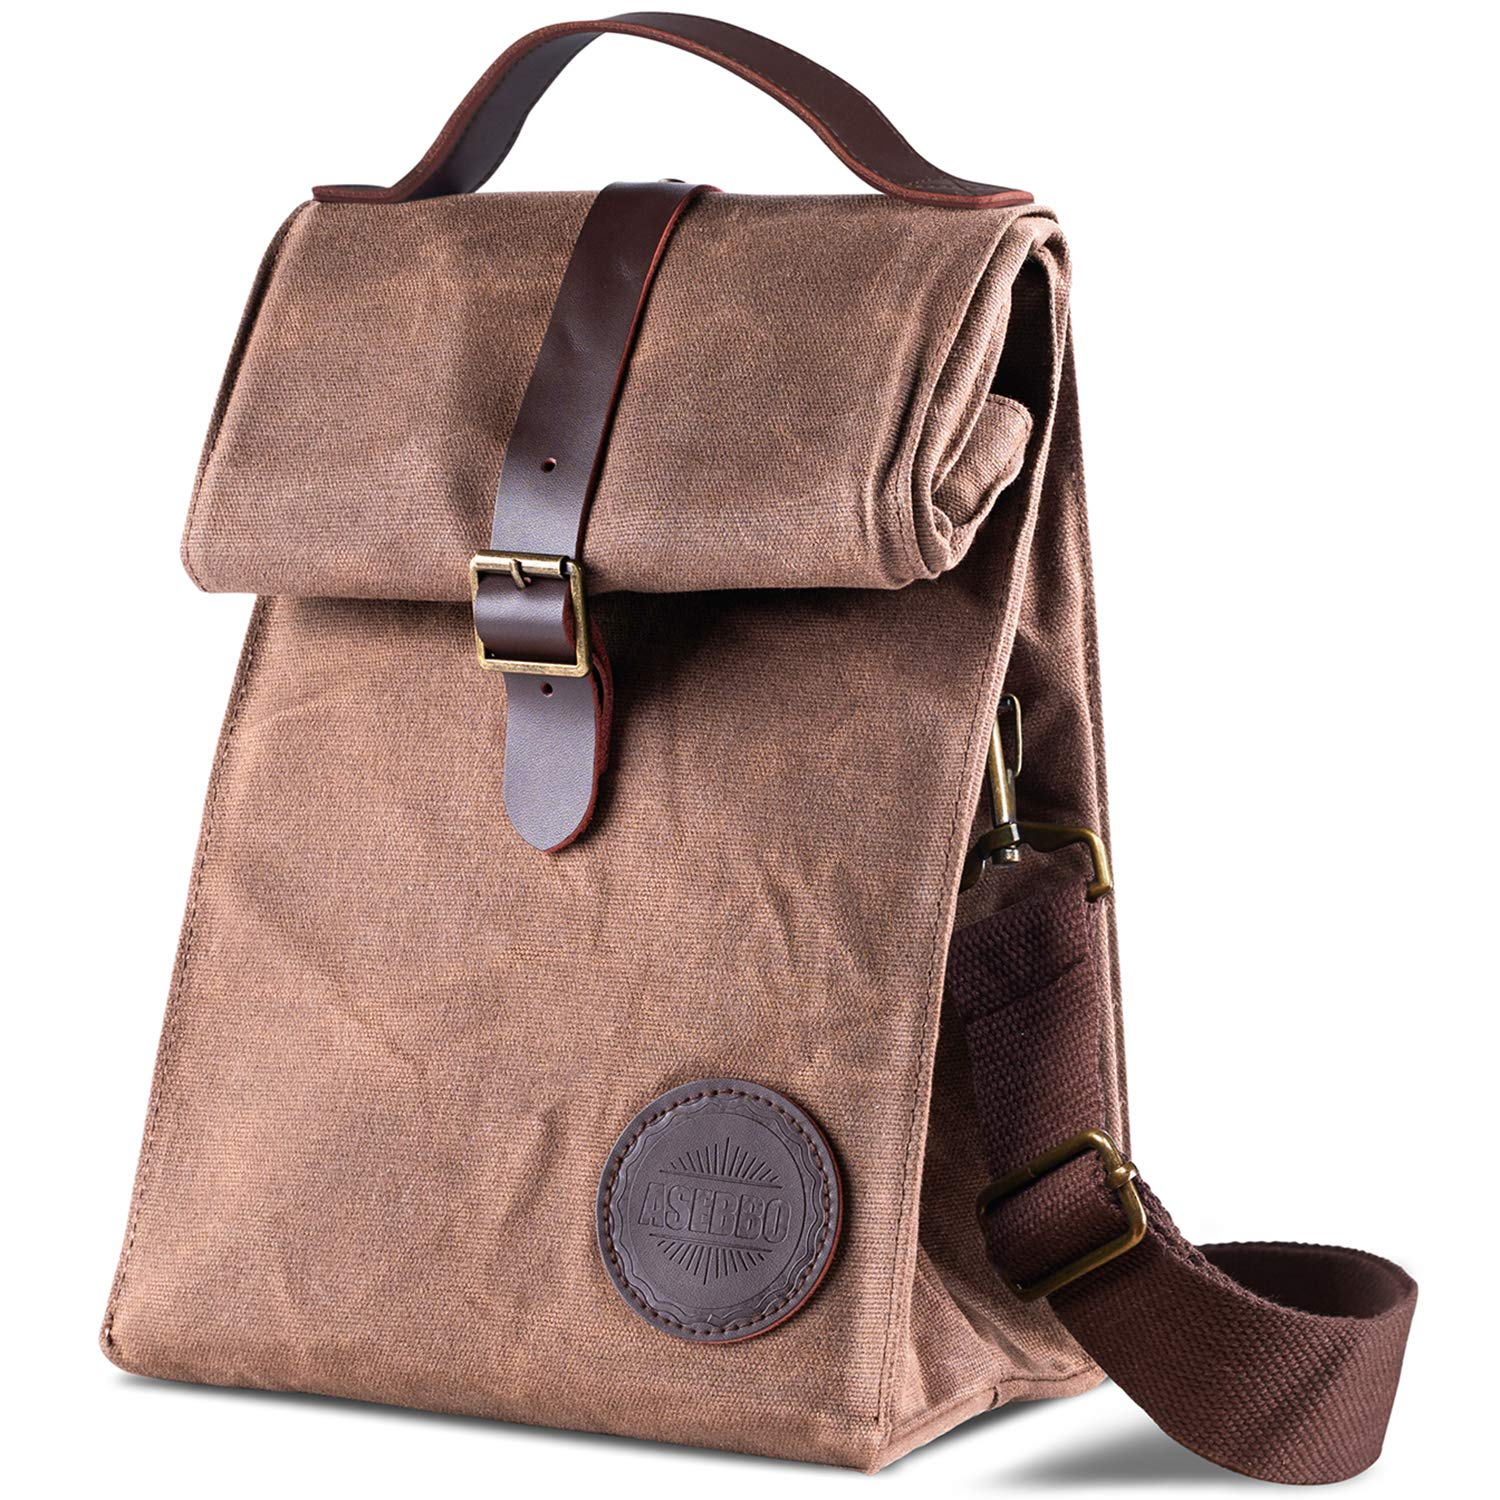 26eaded680cb Insulated Waxed Canvas Lunch Bag by ASEBBO, Lunch Box for Women, Men with  Genuine Leather Handle and Strong Buckle-Closure to Keep Your Food Cool, ...